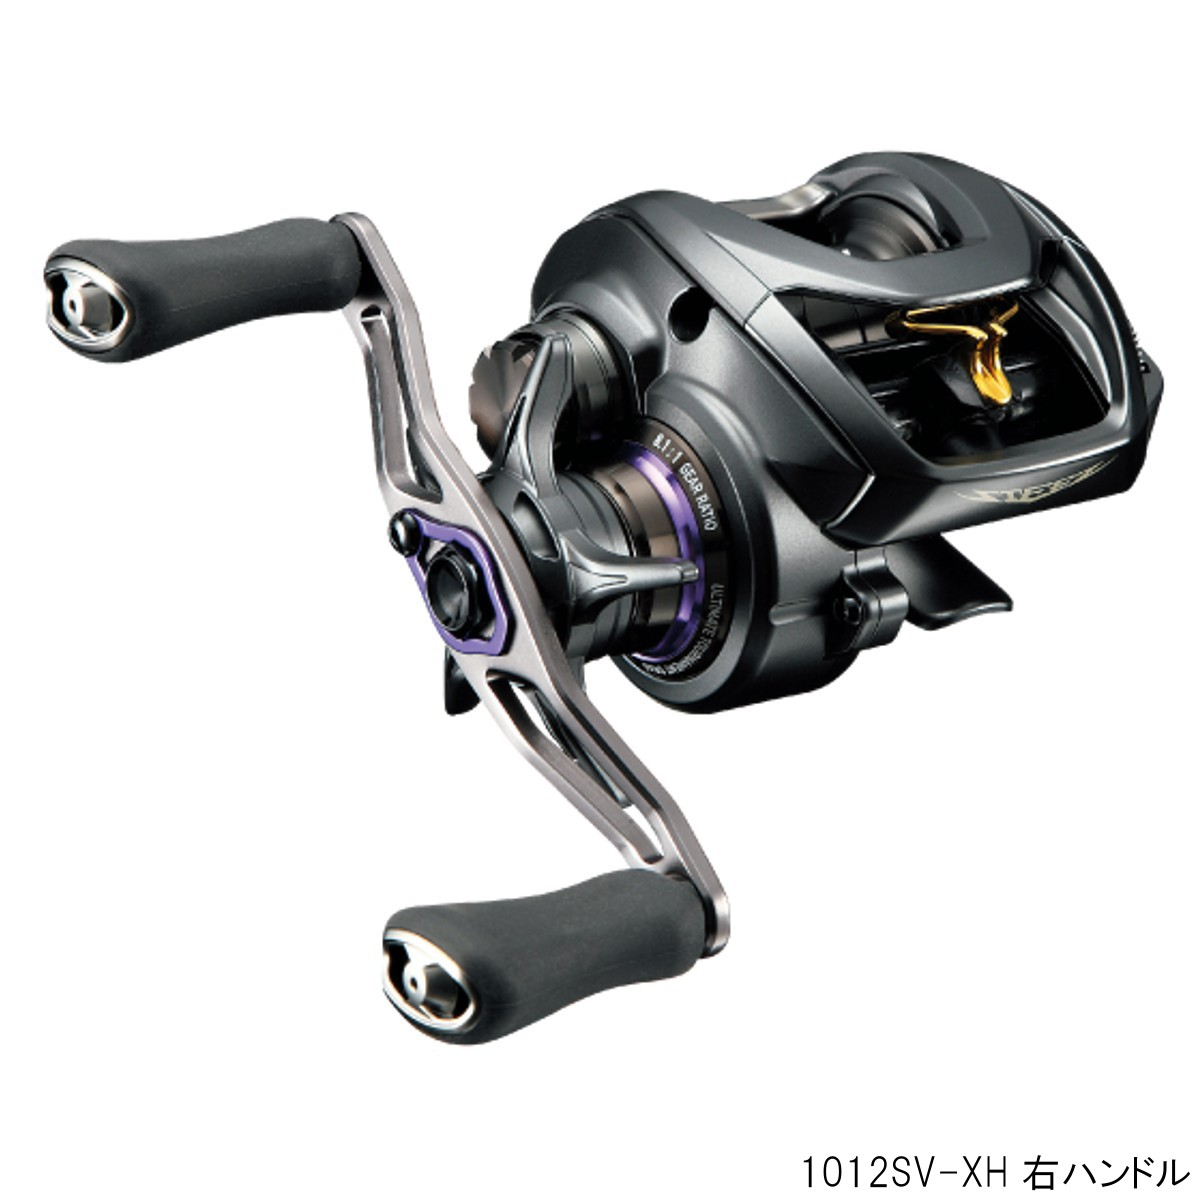 a1af3bf80cc Fishing Tackle Point: Daiwa STEEZ SV TW 1012SV-XH right-hand drive ...